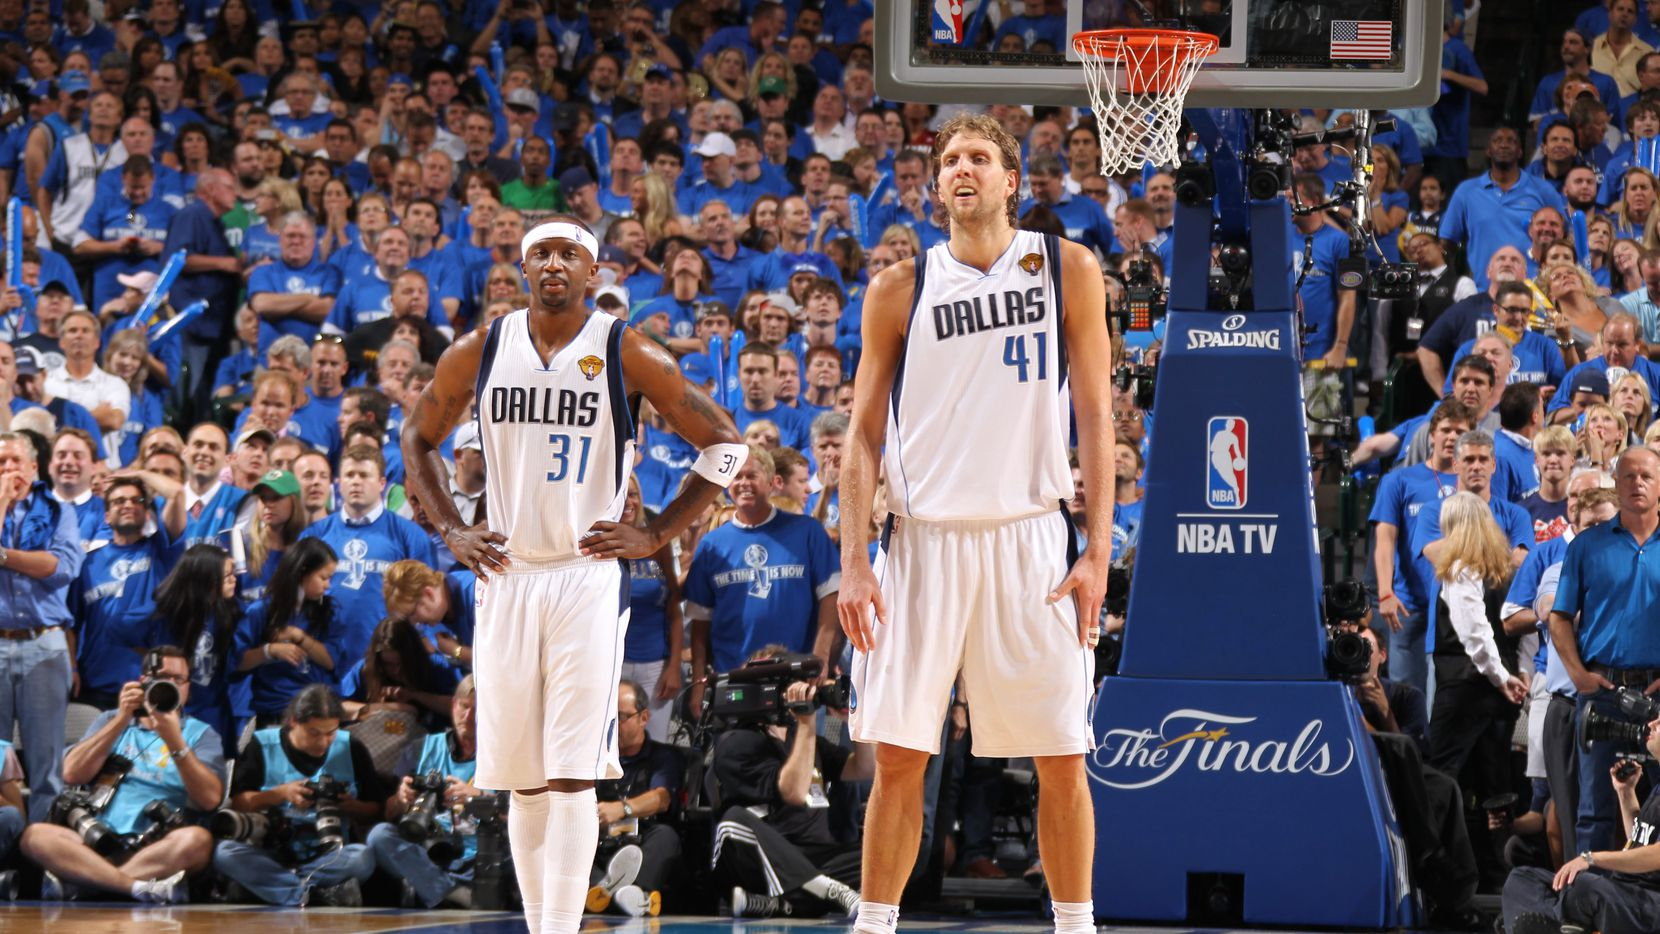 Jason Terry #31 and Dirk Nowitzki #41 of the Dallas Mavericks during against the Miami Heat during Game Five of the 2011 NBA Finals on June 09, 2011 at the American Airlines Center in Dallas, Texas.